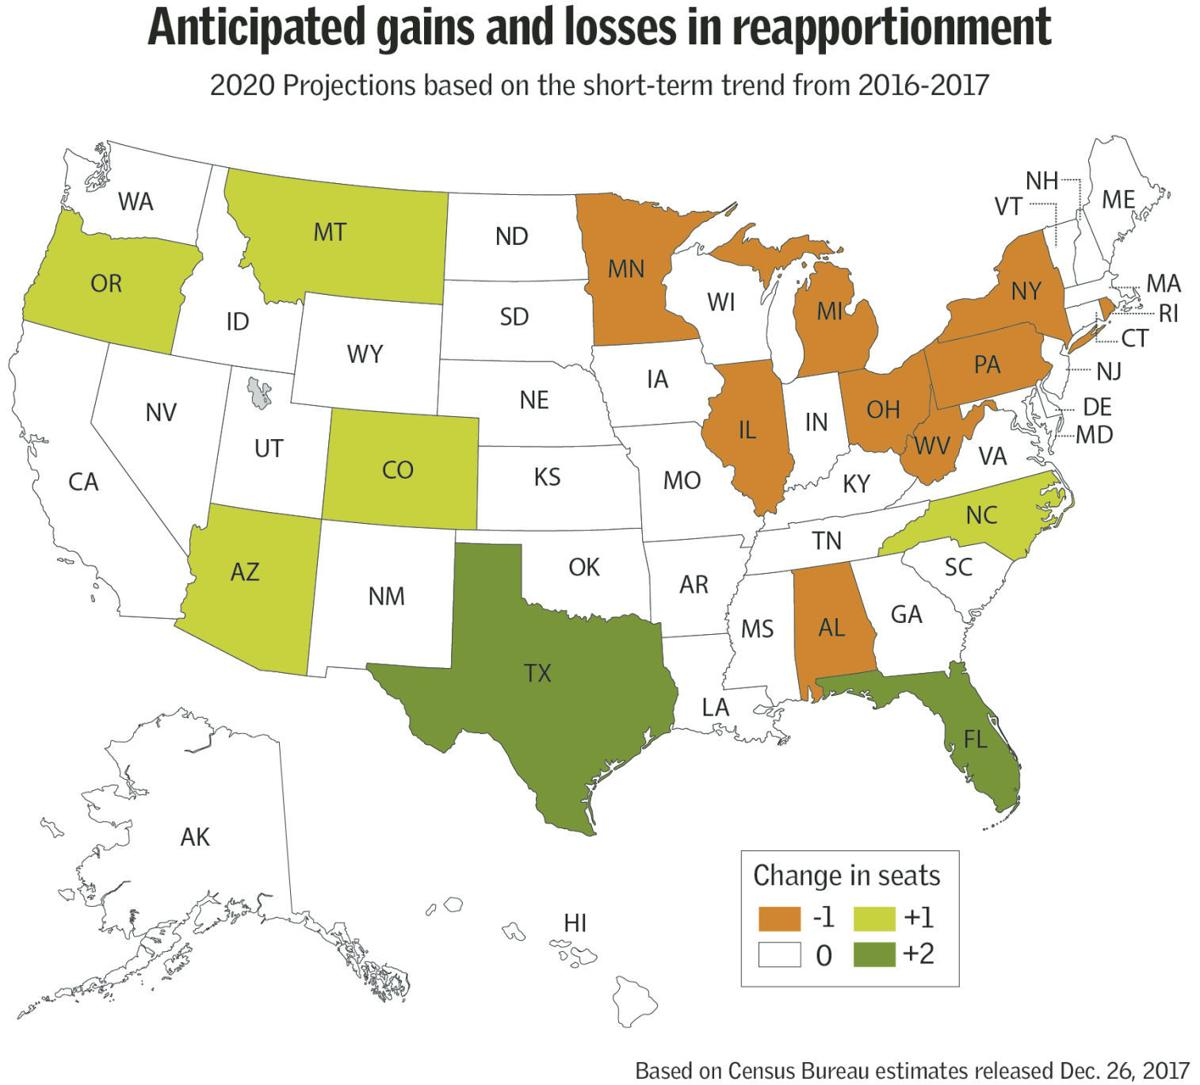 Anticipated gains and losses in reapportionment